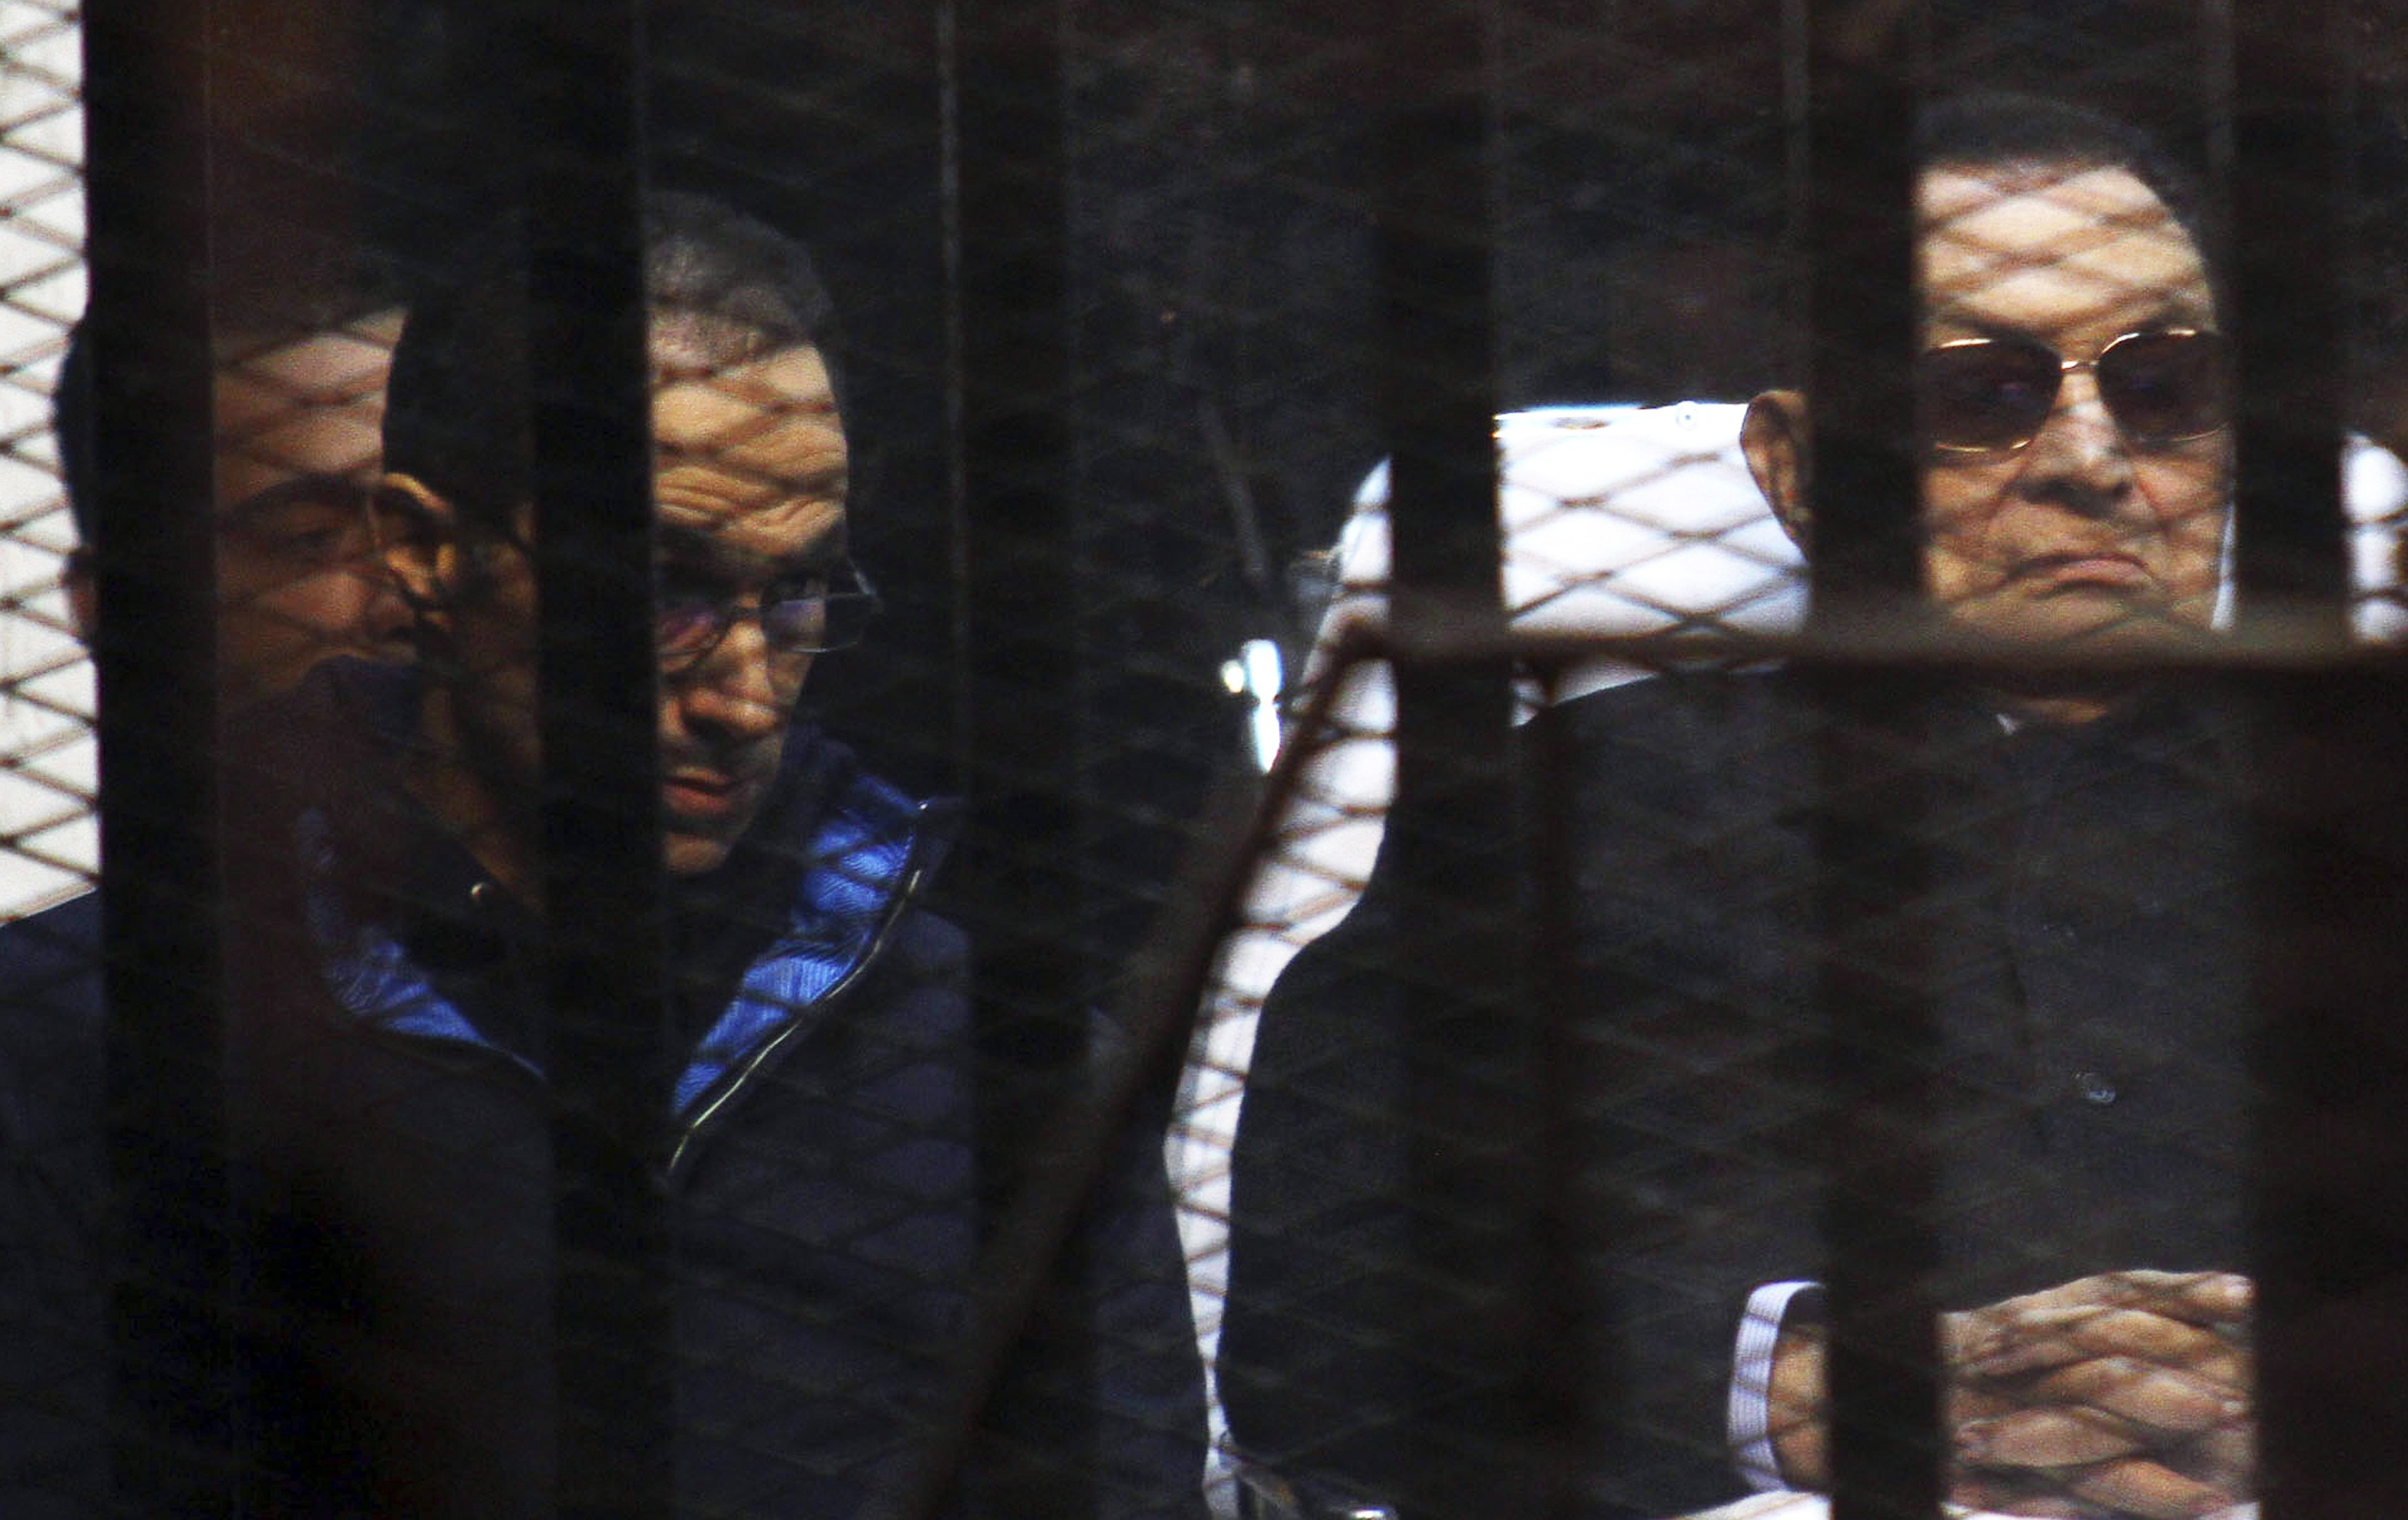 Alaa and Gamal Mubarak yet to be released - prison department